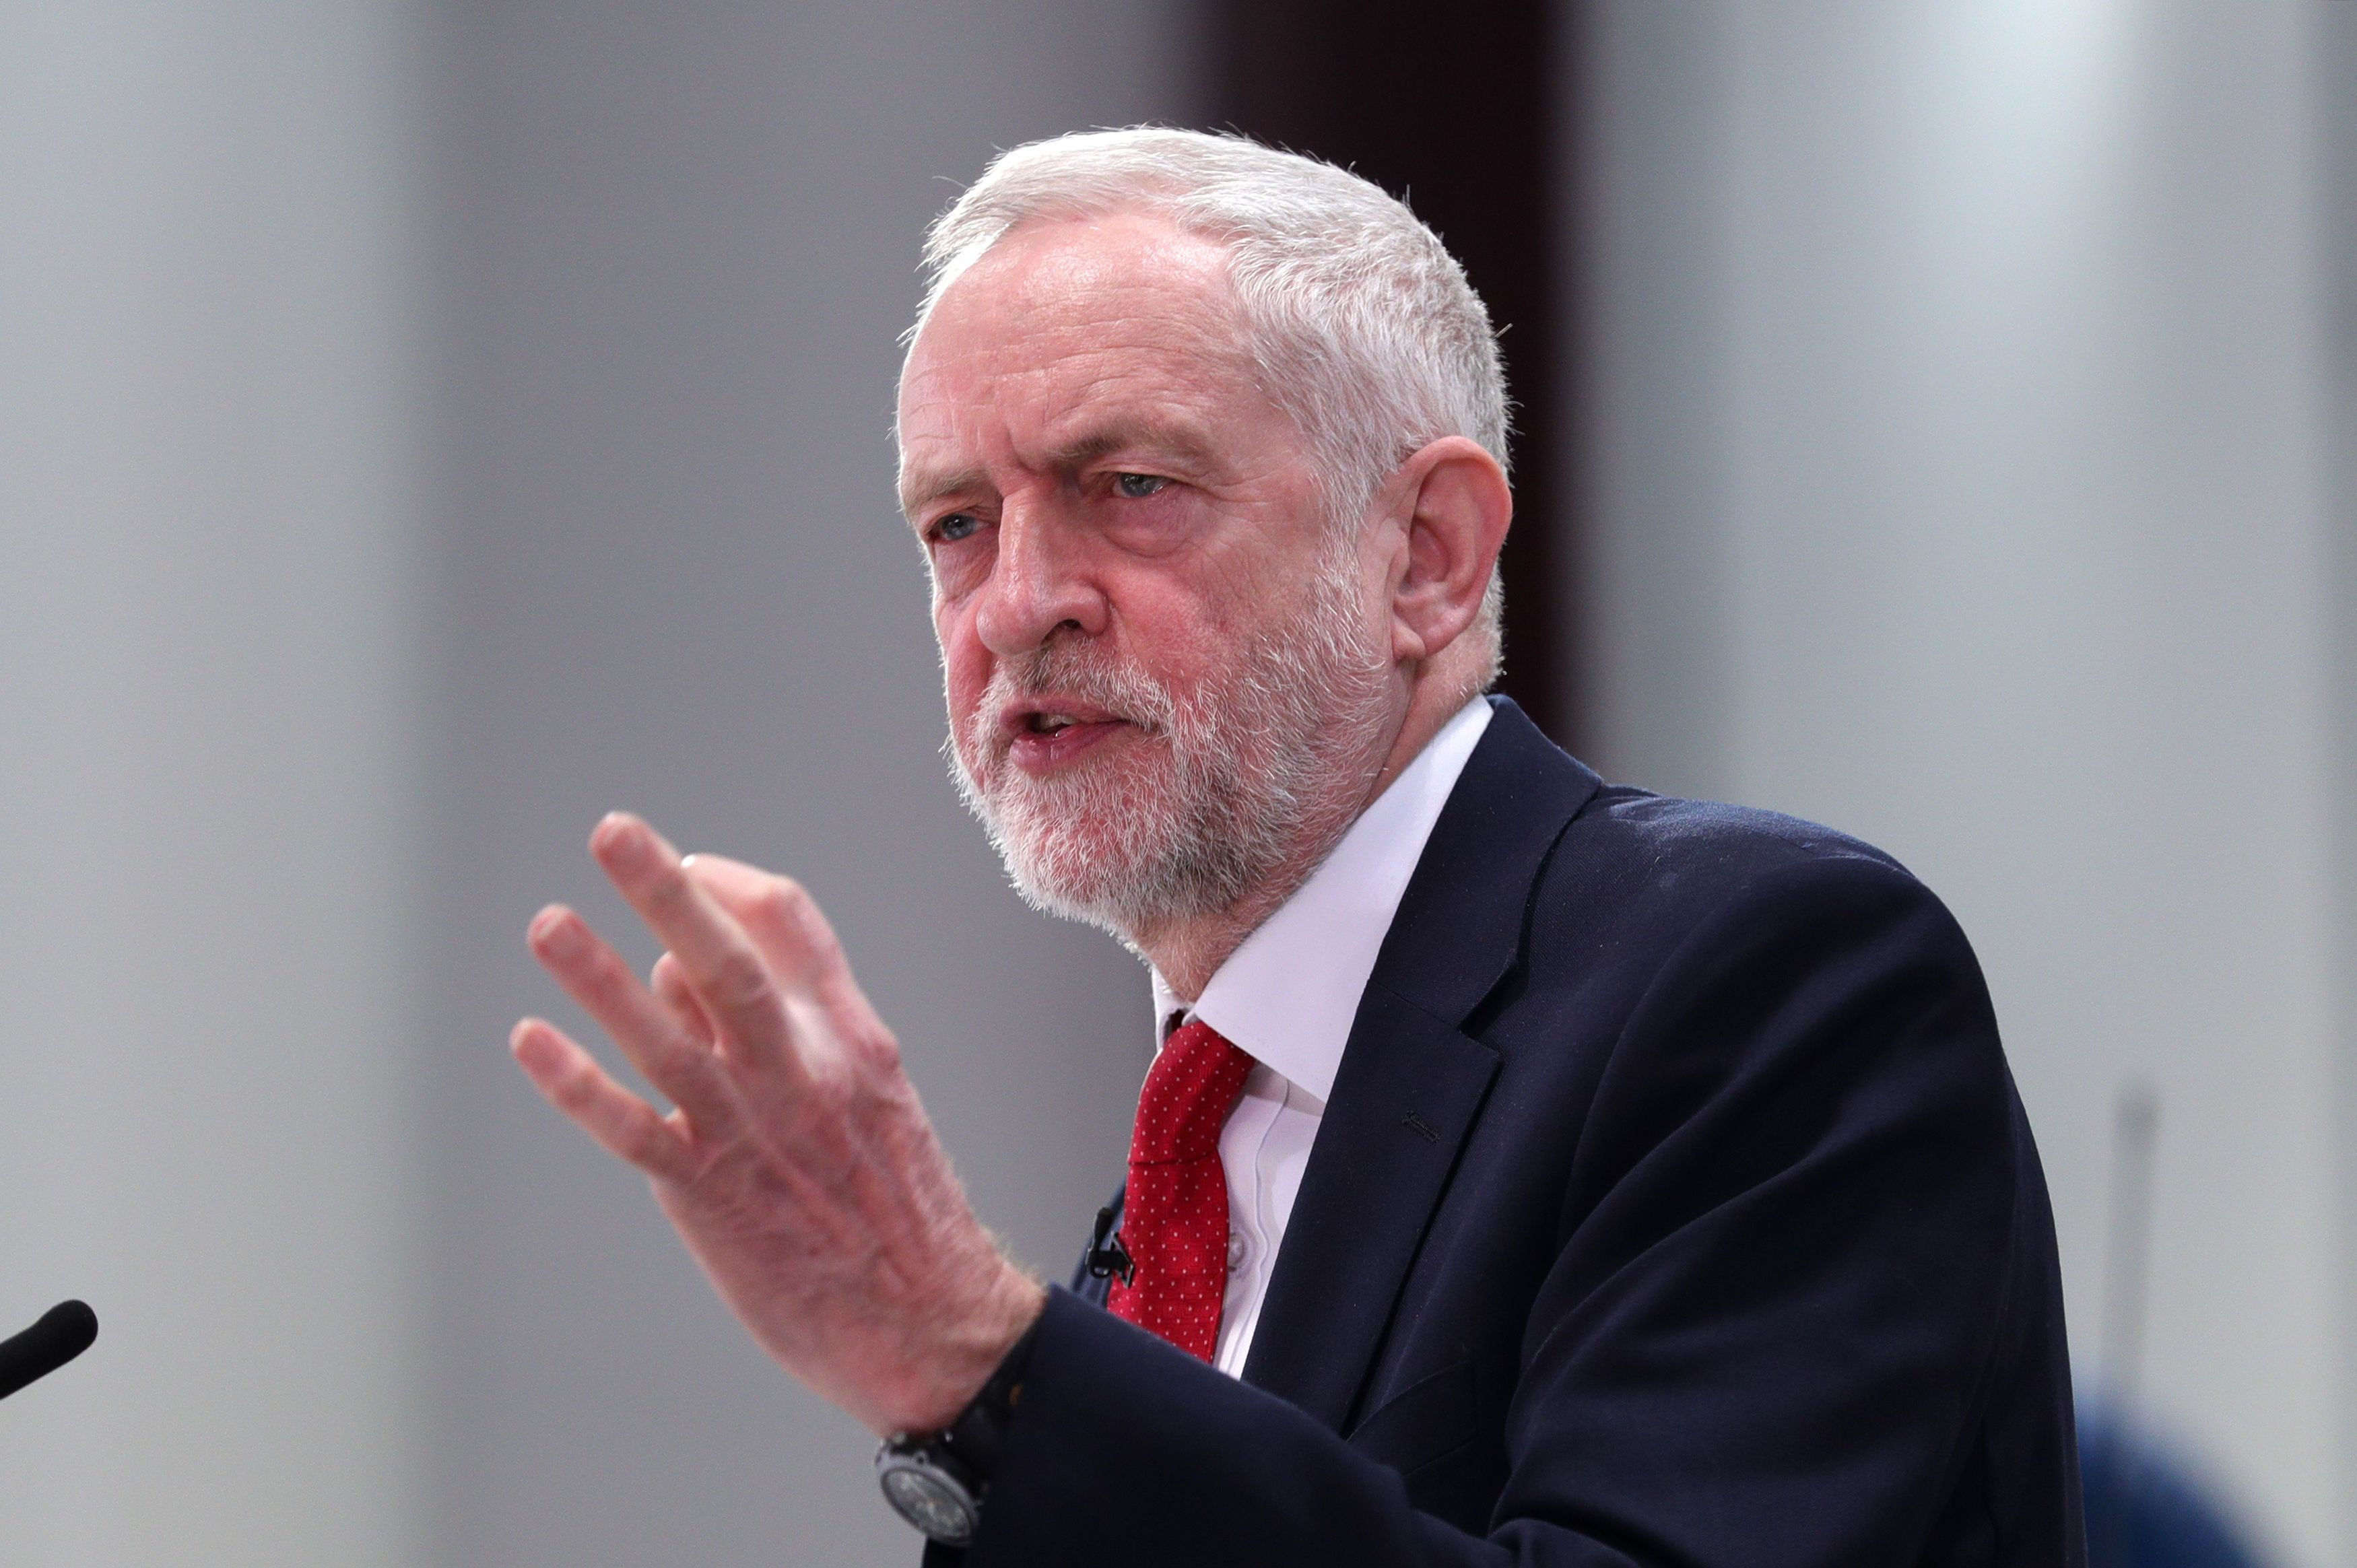 Labour Response To Facebook Anti-Semitism 'Totally Inadequate', Campaigners Say